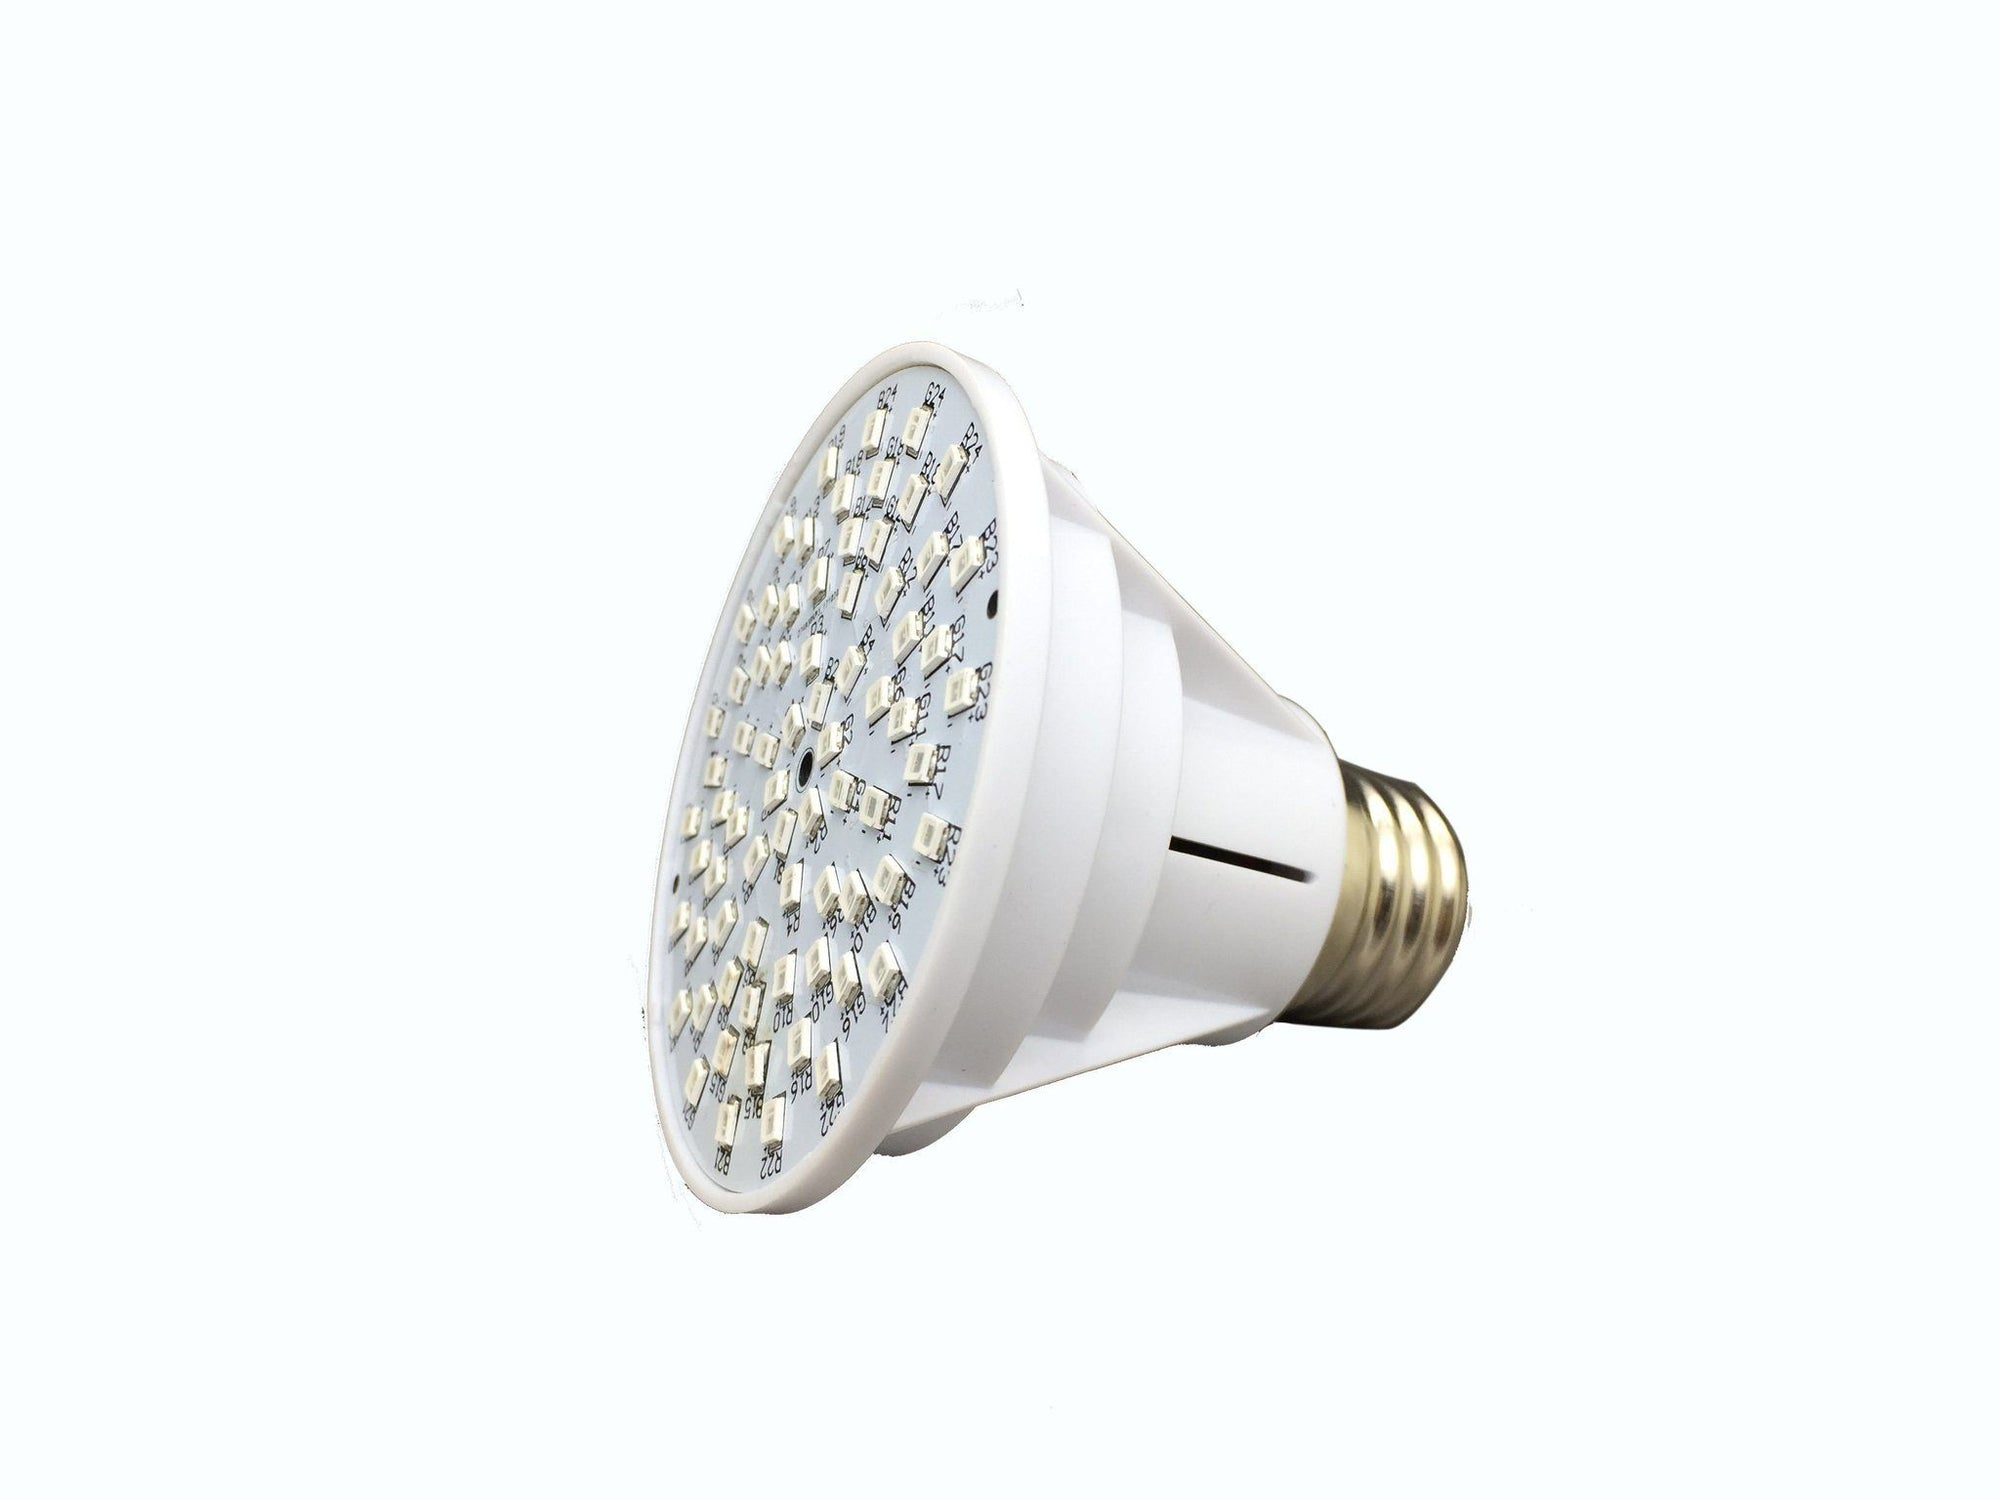 LED SPA Light Bulb 1900 Lumens 12V RGB for Hayward® Pentair® Lights Home & Garden > Lighting > Light Bulbs Refined LED